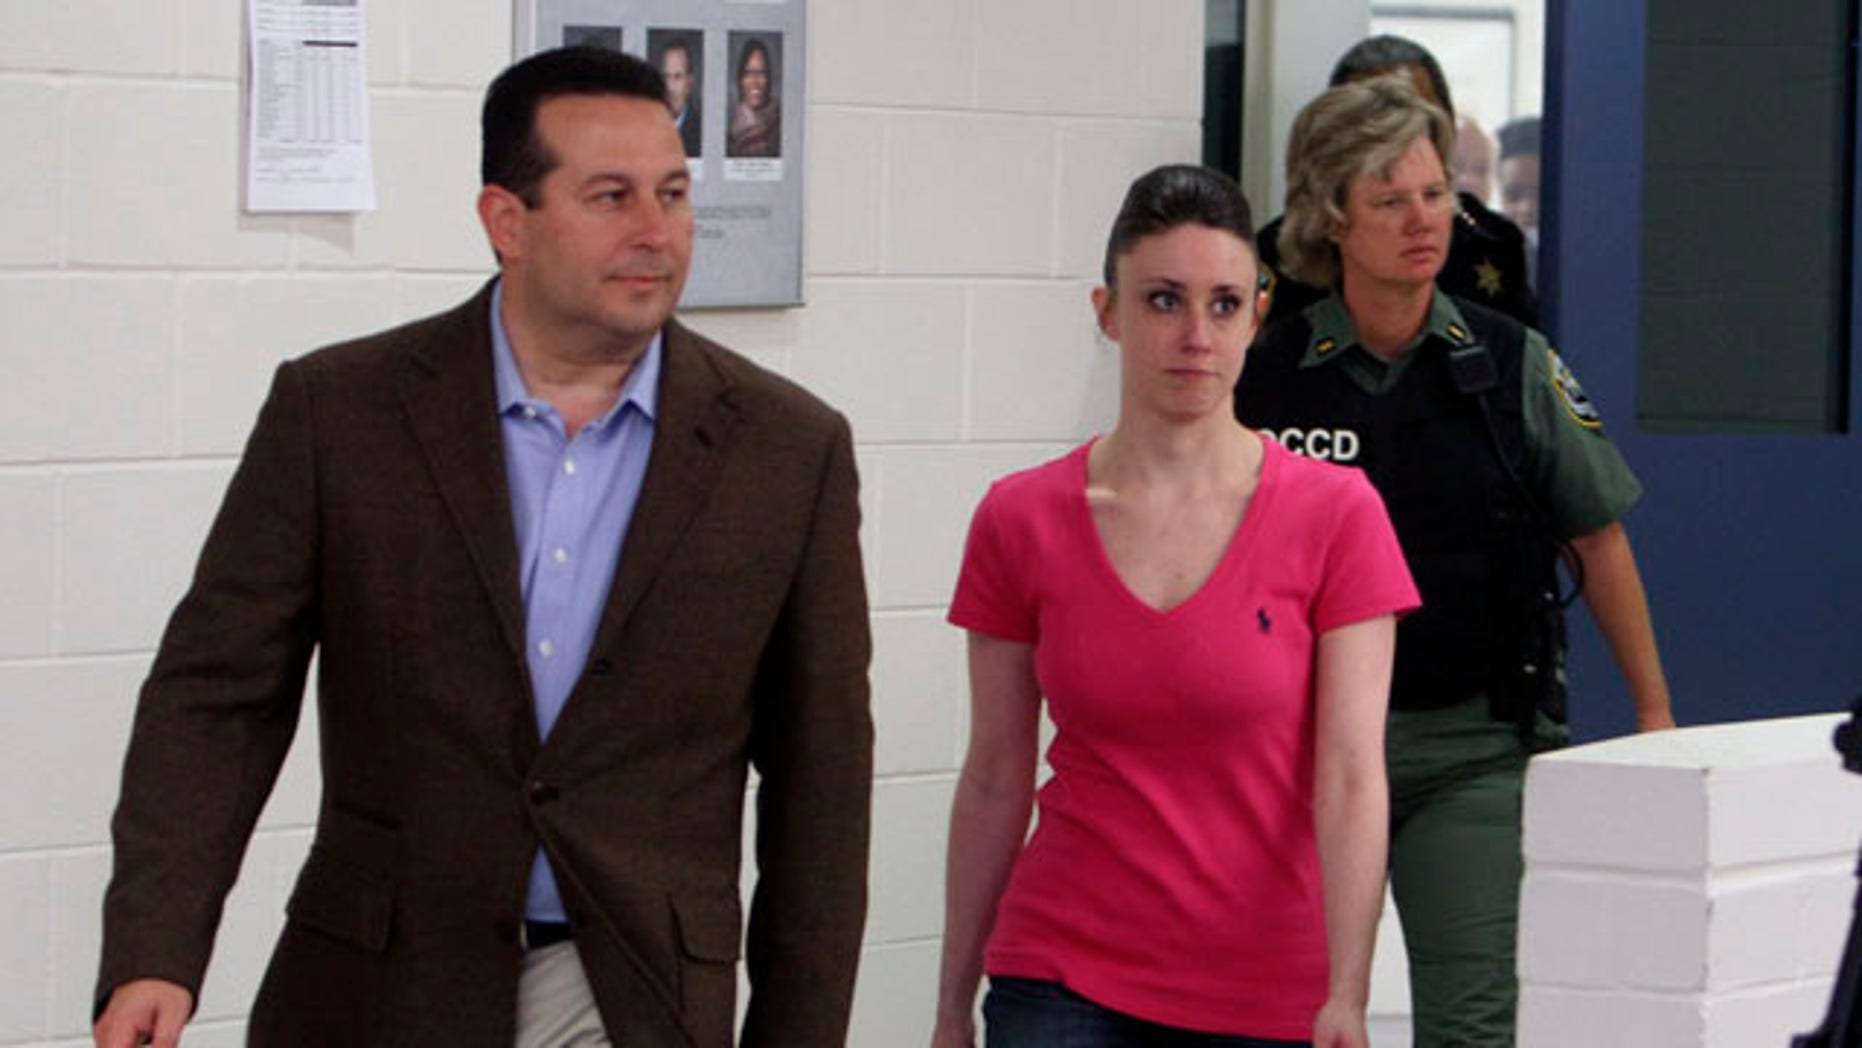 Casey Anthony, center, walks out of the Orange County Jail with her attorney Jose Baez, left,  during her release in Orlando, Fla., early Sunday, July 17, 2011.